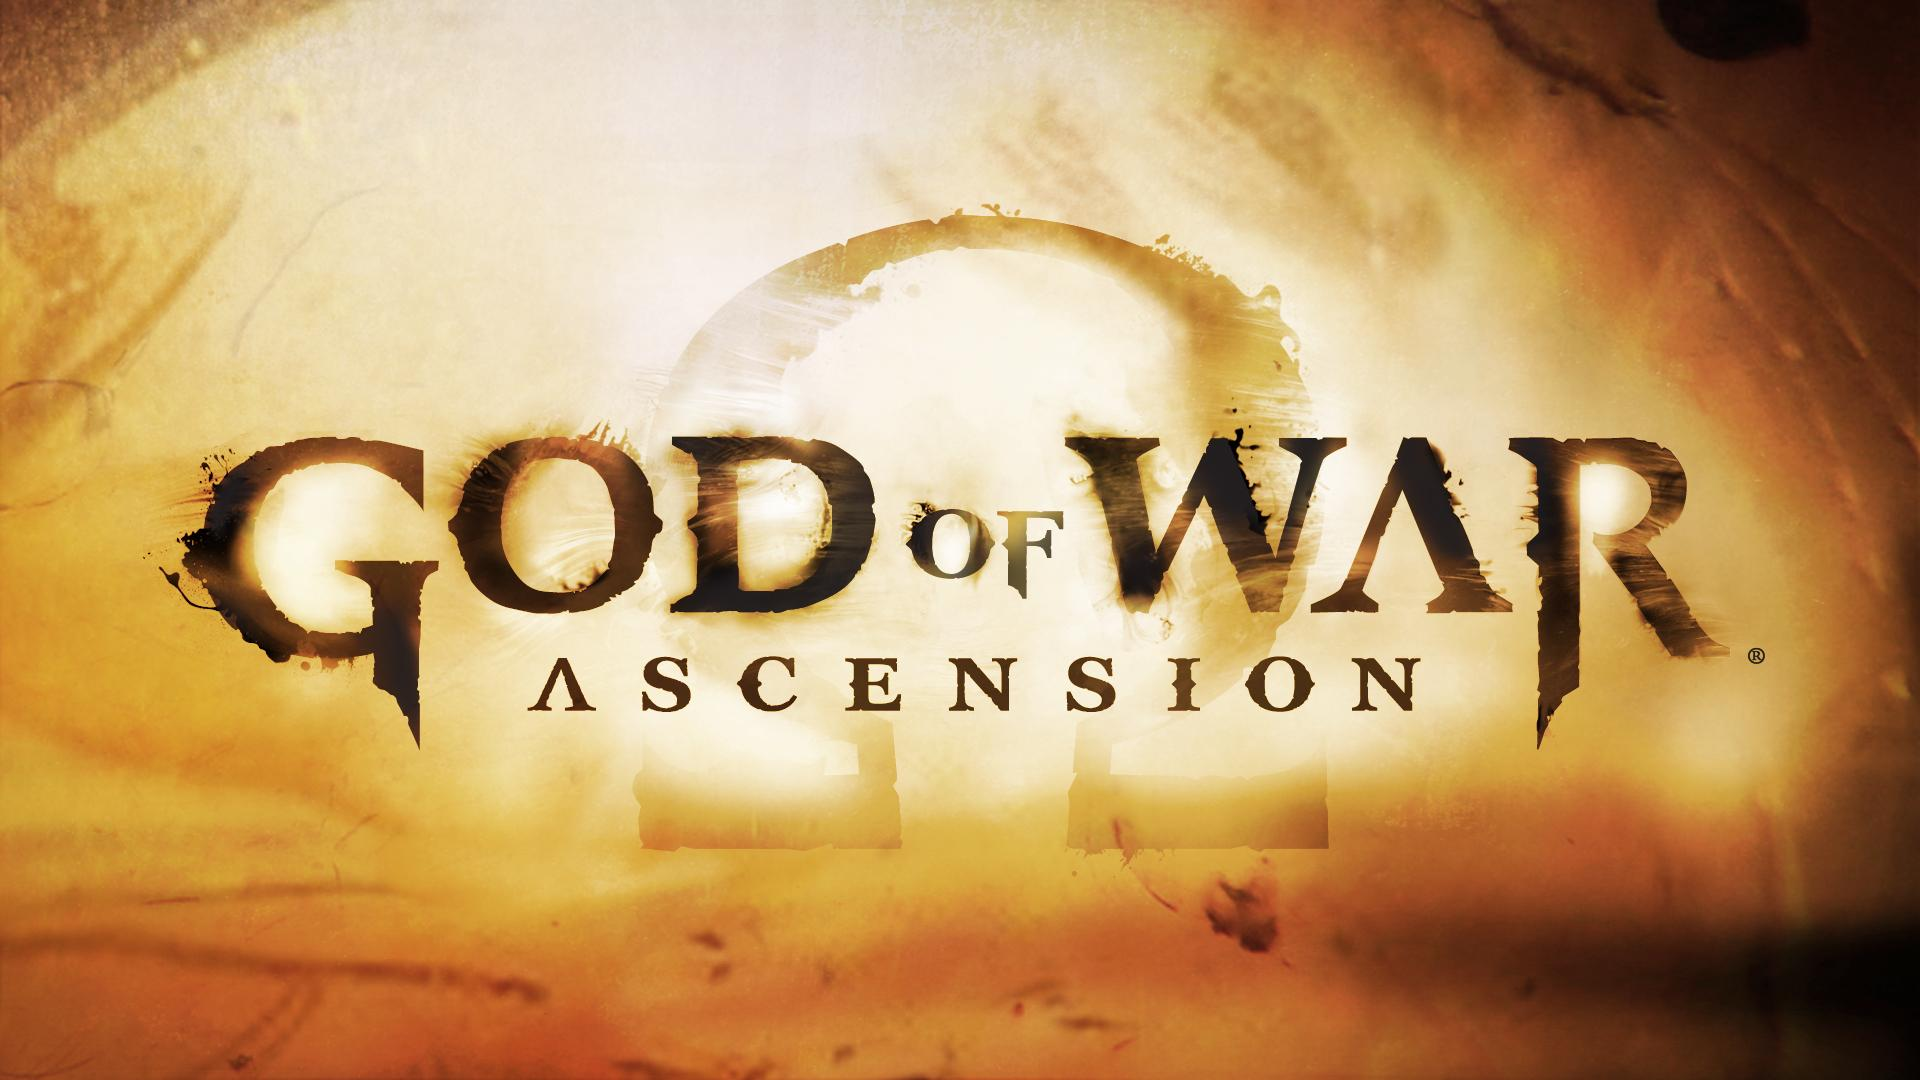 God of War Ascension 1112.91 Kb